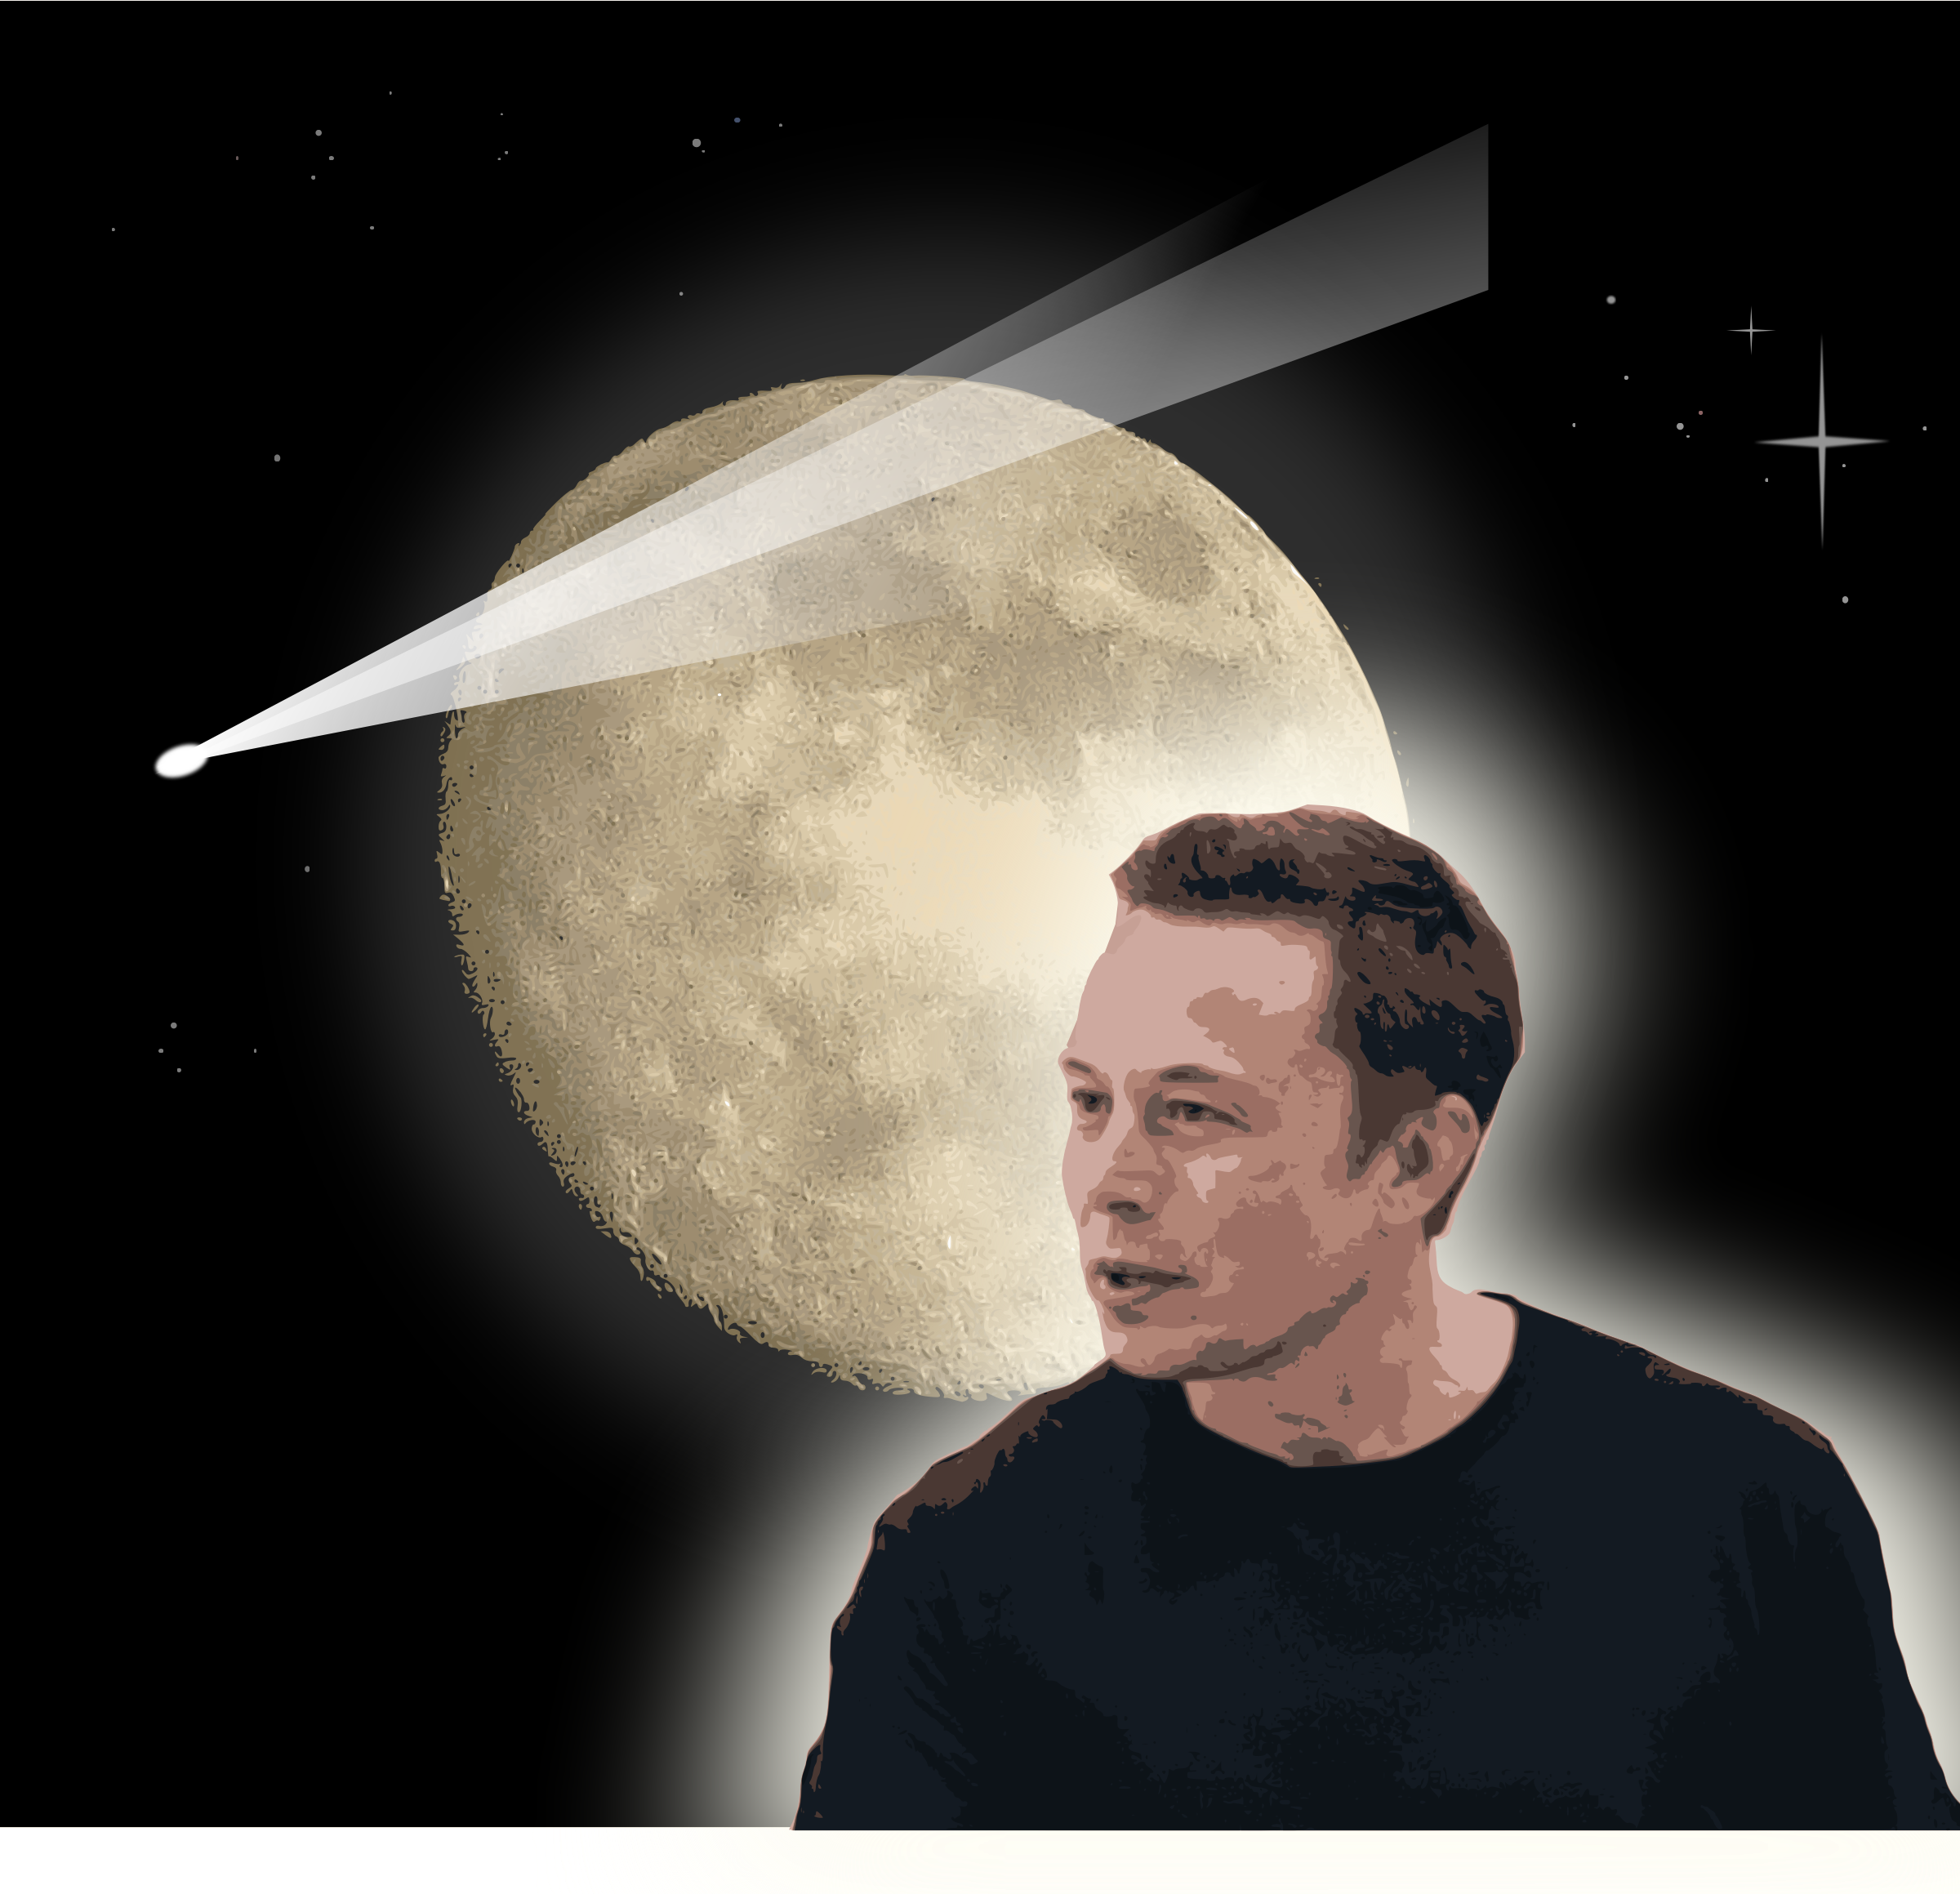 Elon Musk and the Moon by j4p4n